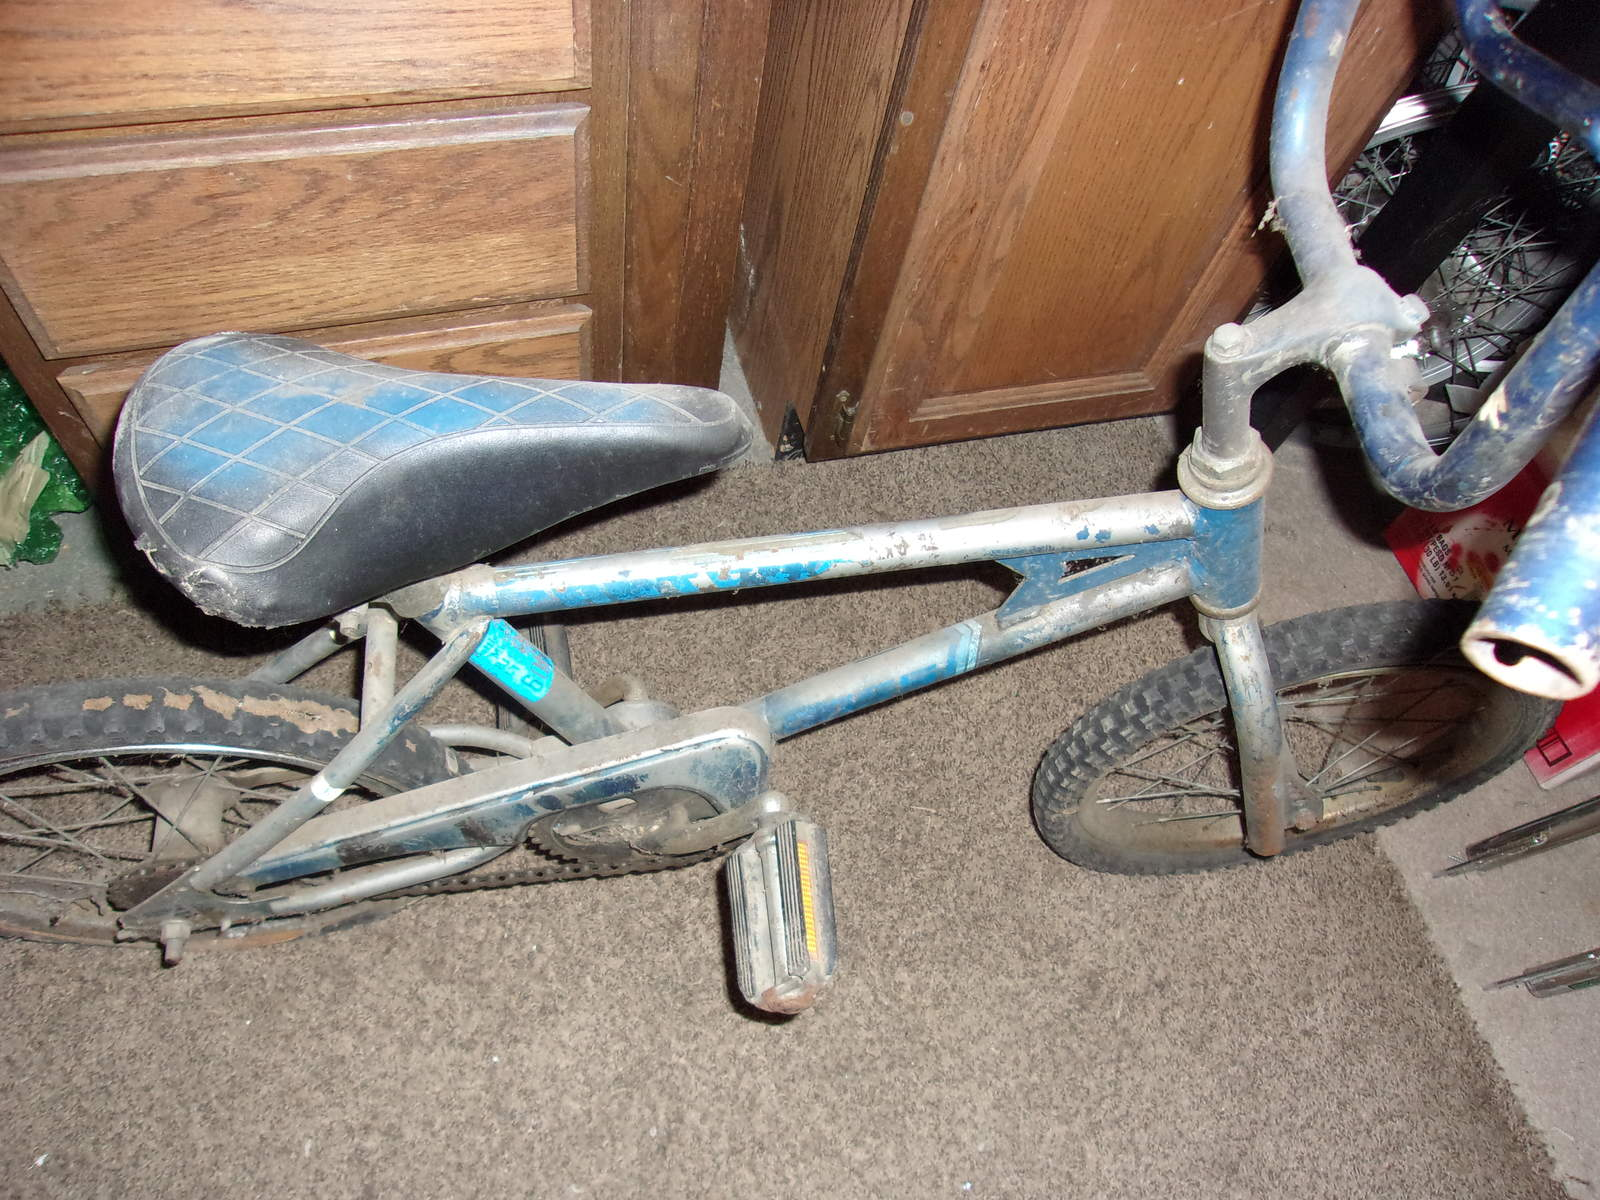 http://uploads.bmxmuseum.com/user-images/61851/102_01035c02169b9b.jpg